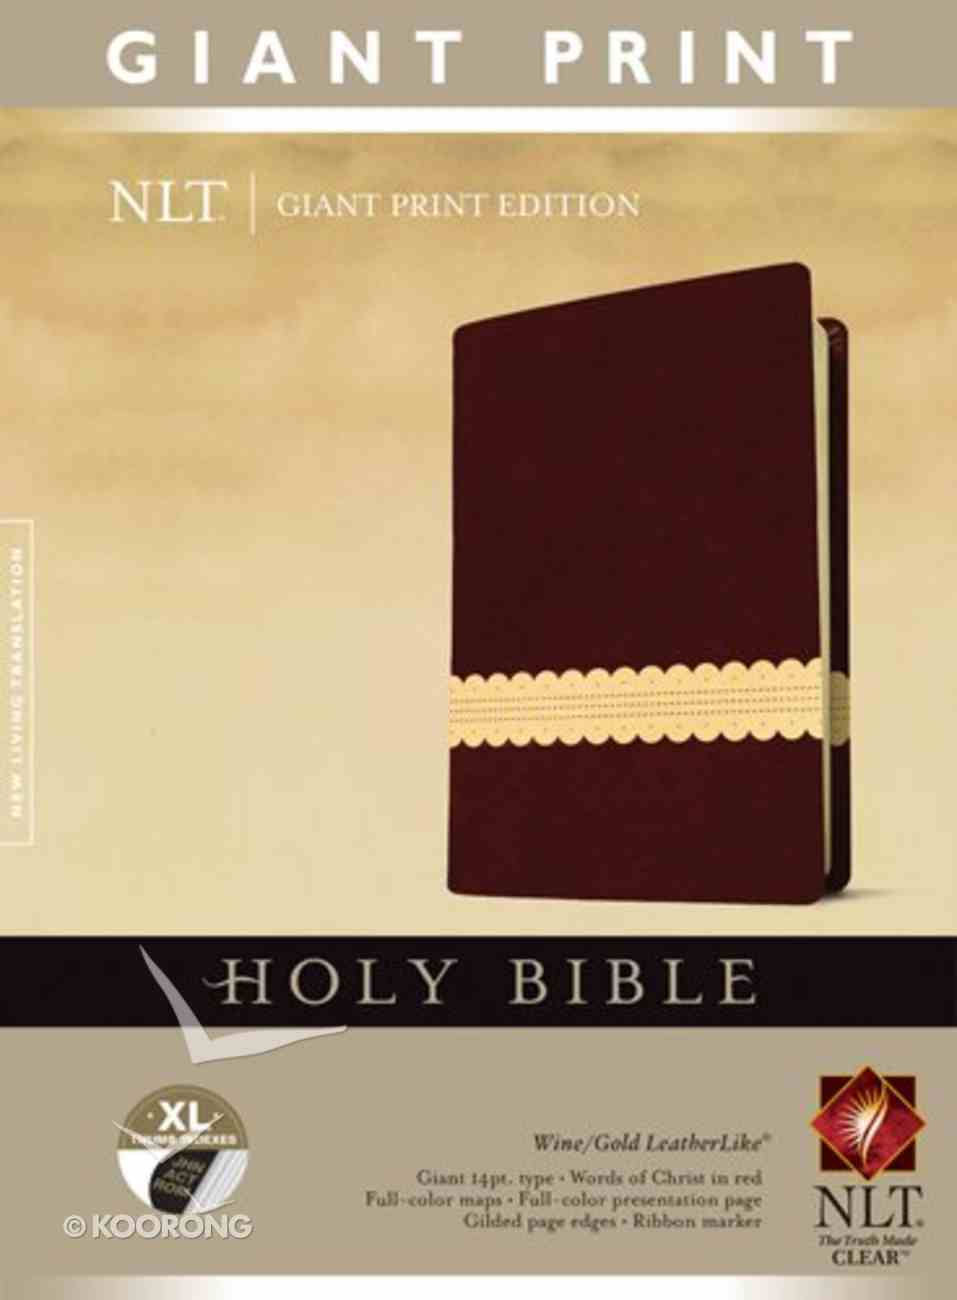 NLT Holy Bible Giant Print Brown/Cream (Red Letter Edition) Imitation Leather